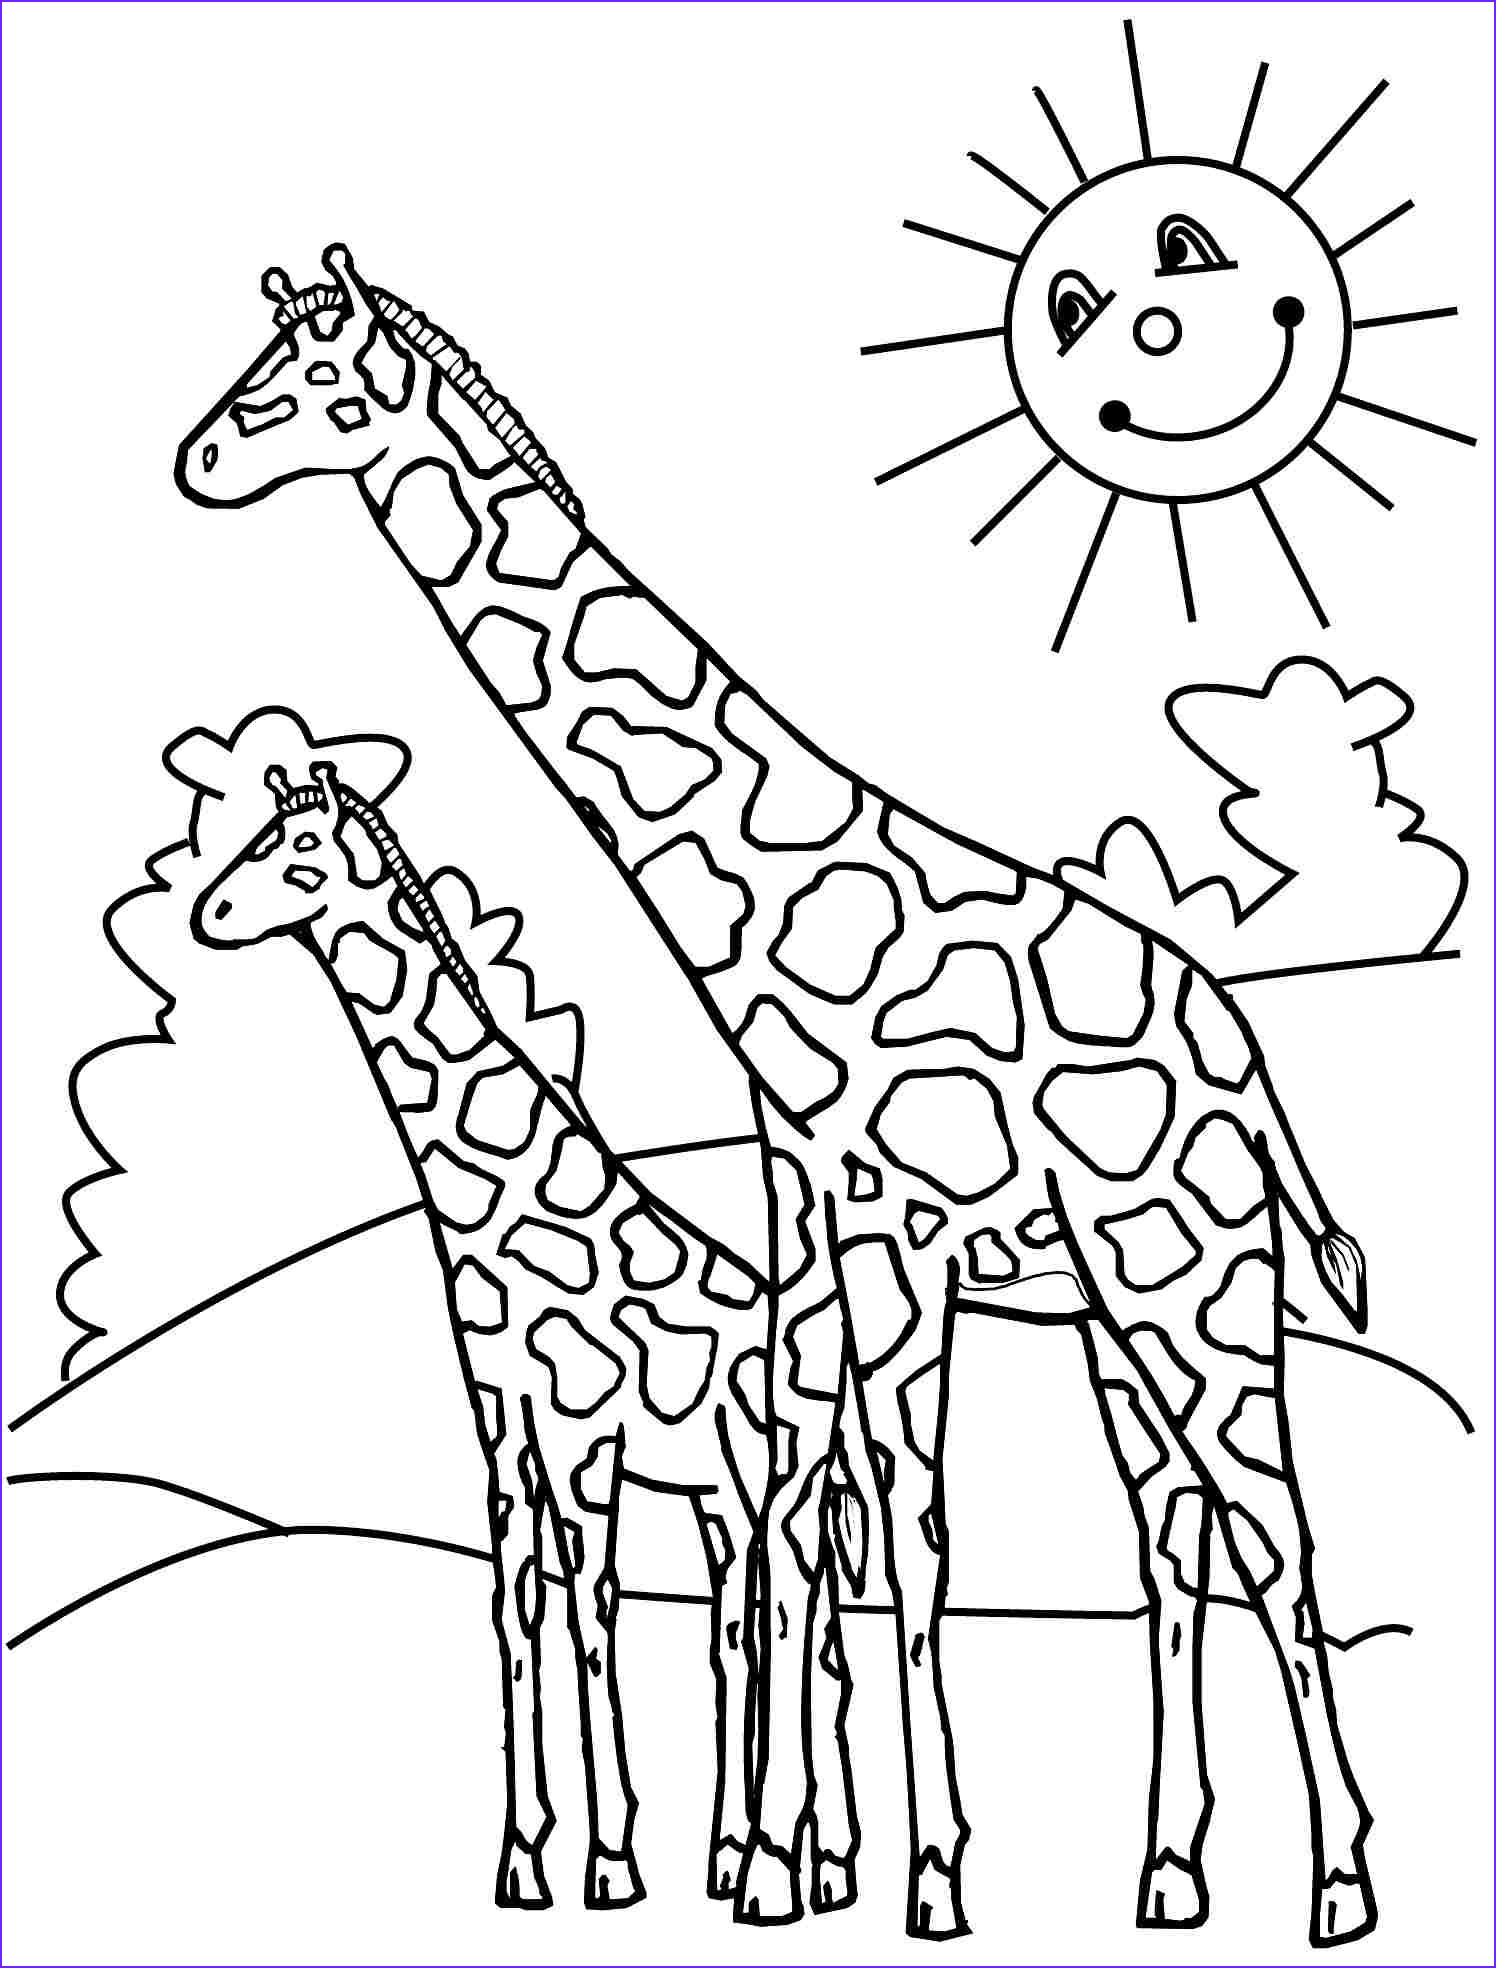 Giraffes Coloring Pages Beautiful Photography Giraffes Coloring Pages to and Print for Free